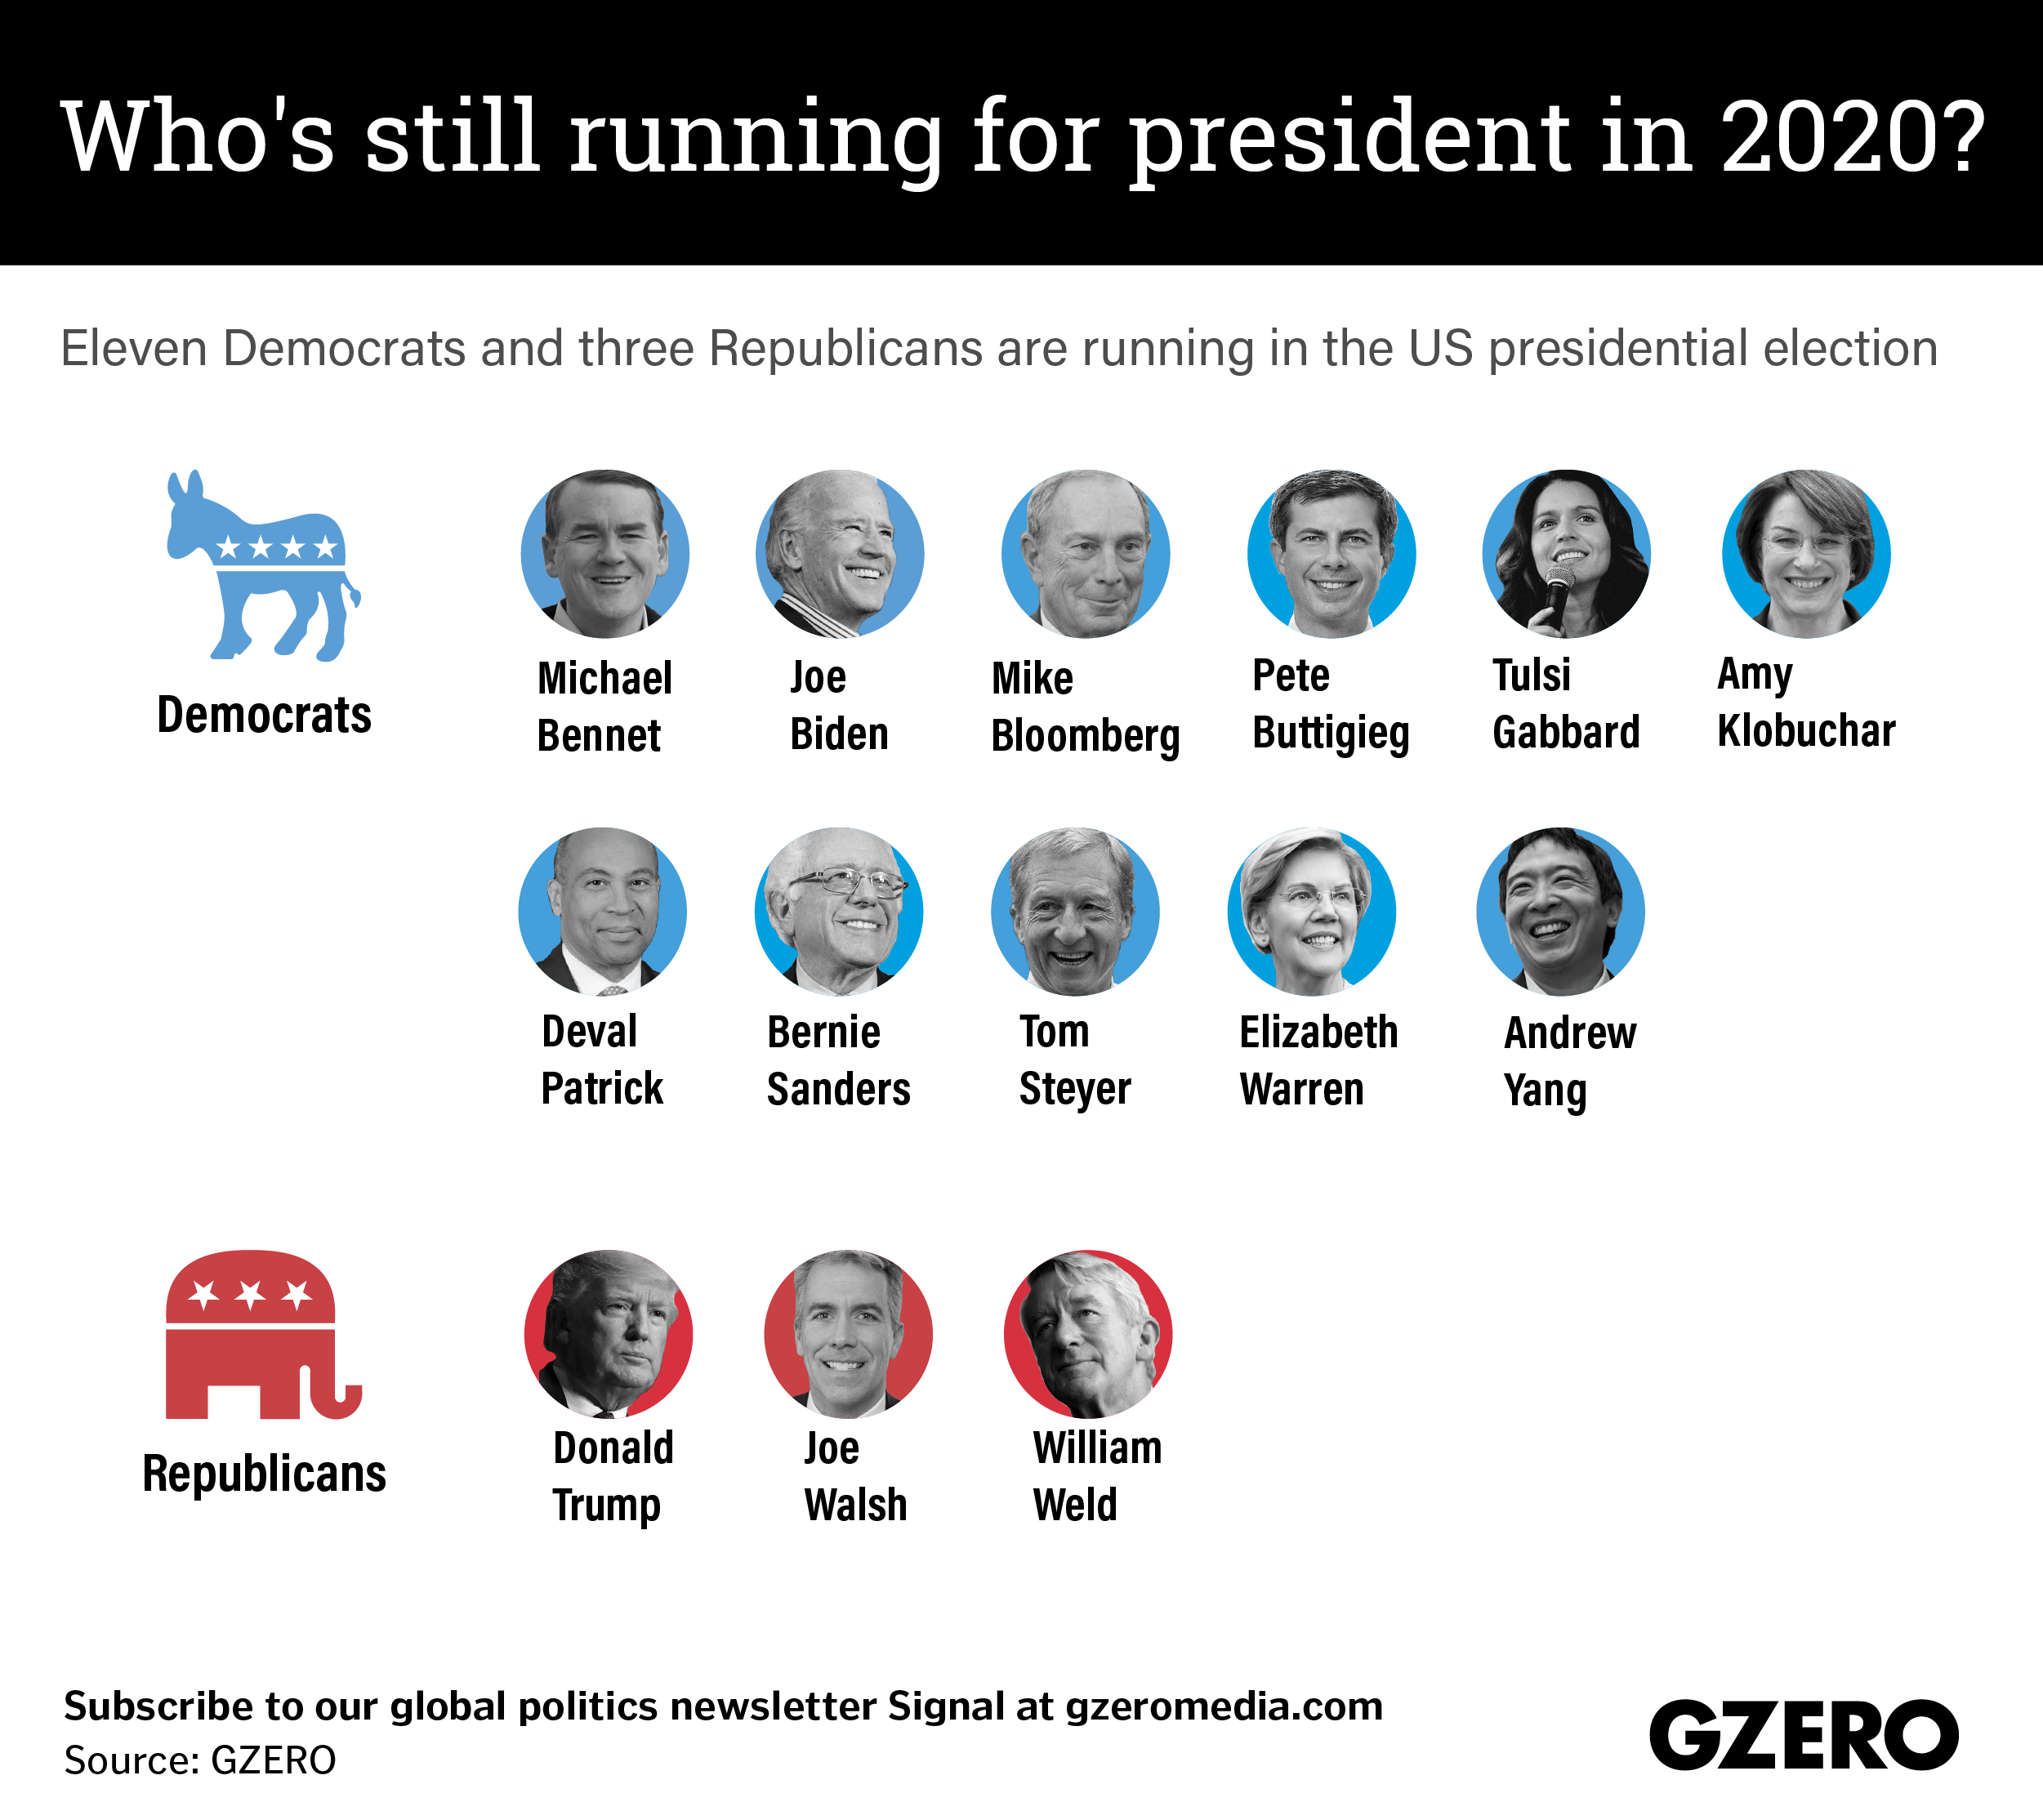 The Graphic Truth: Who's still running for president in 2020?